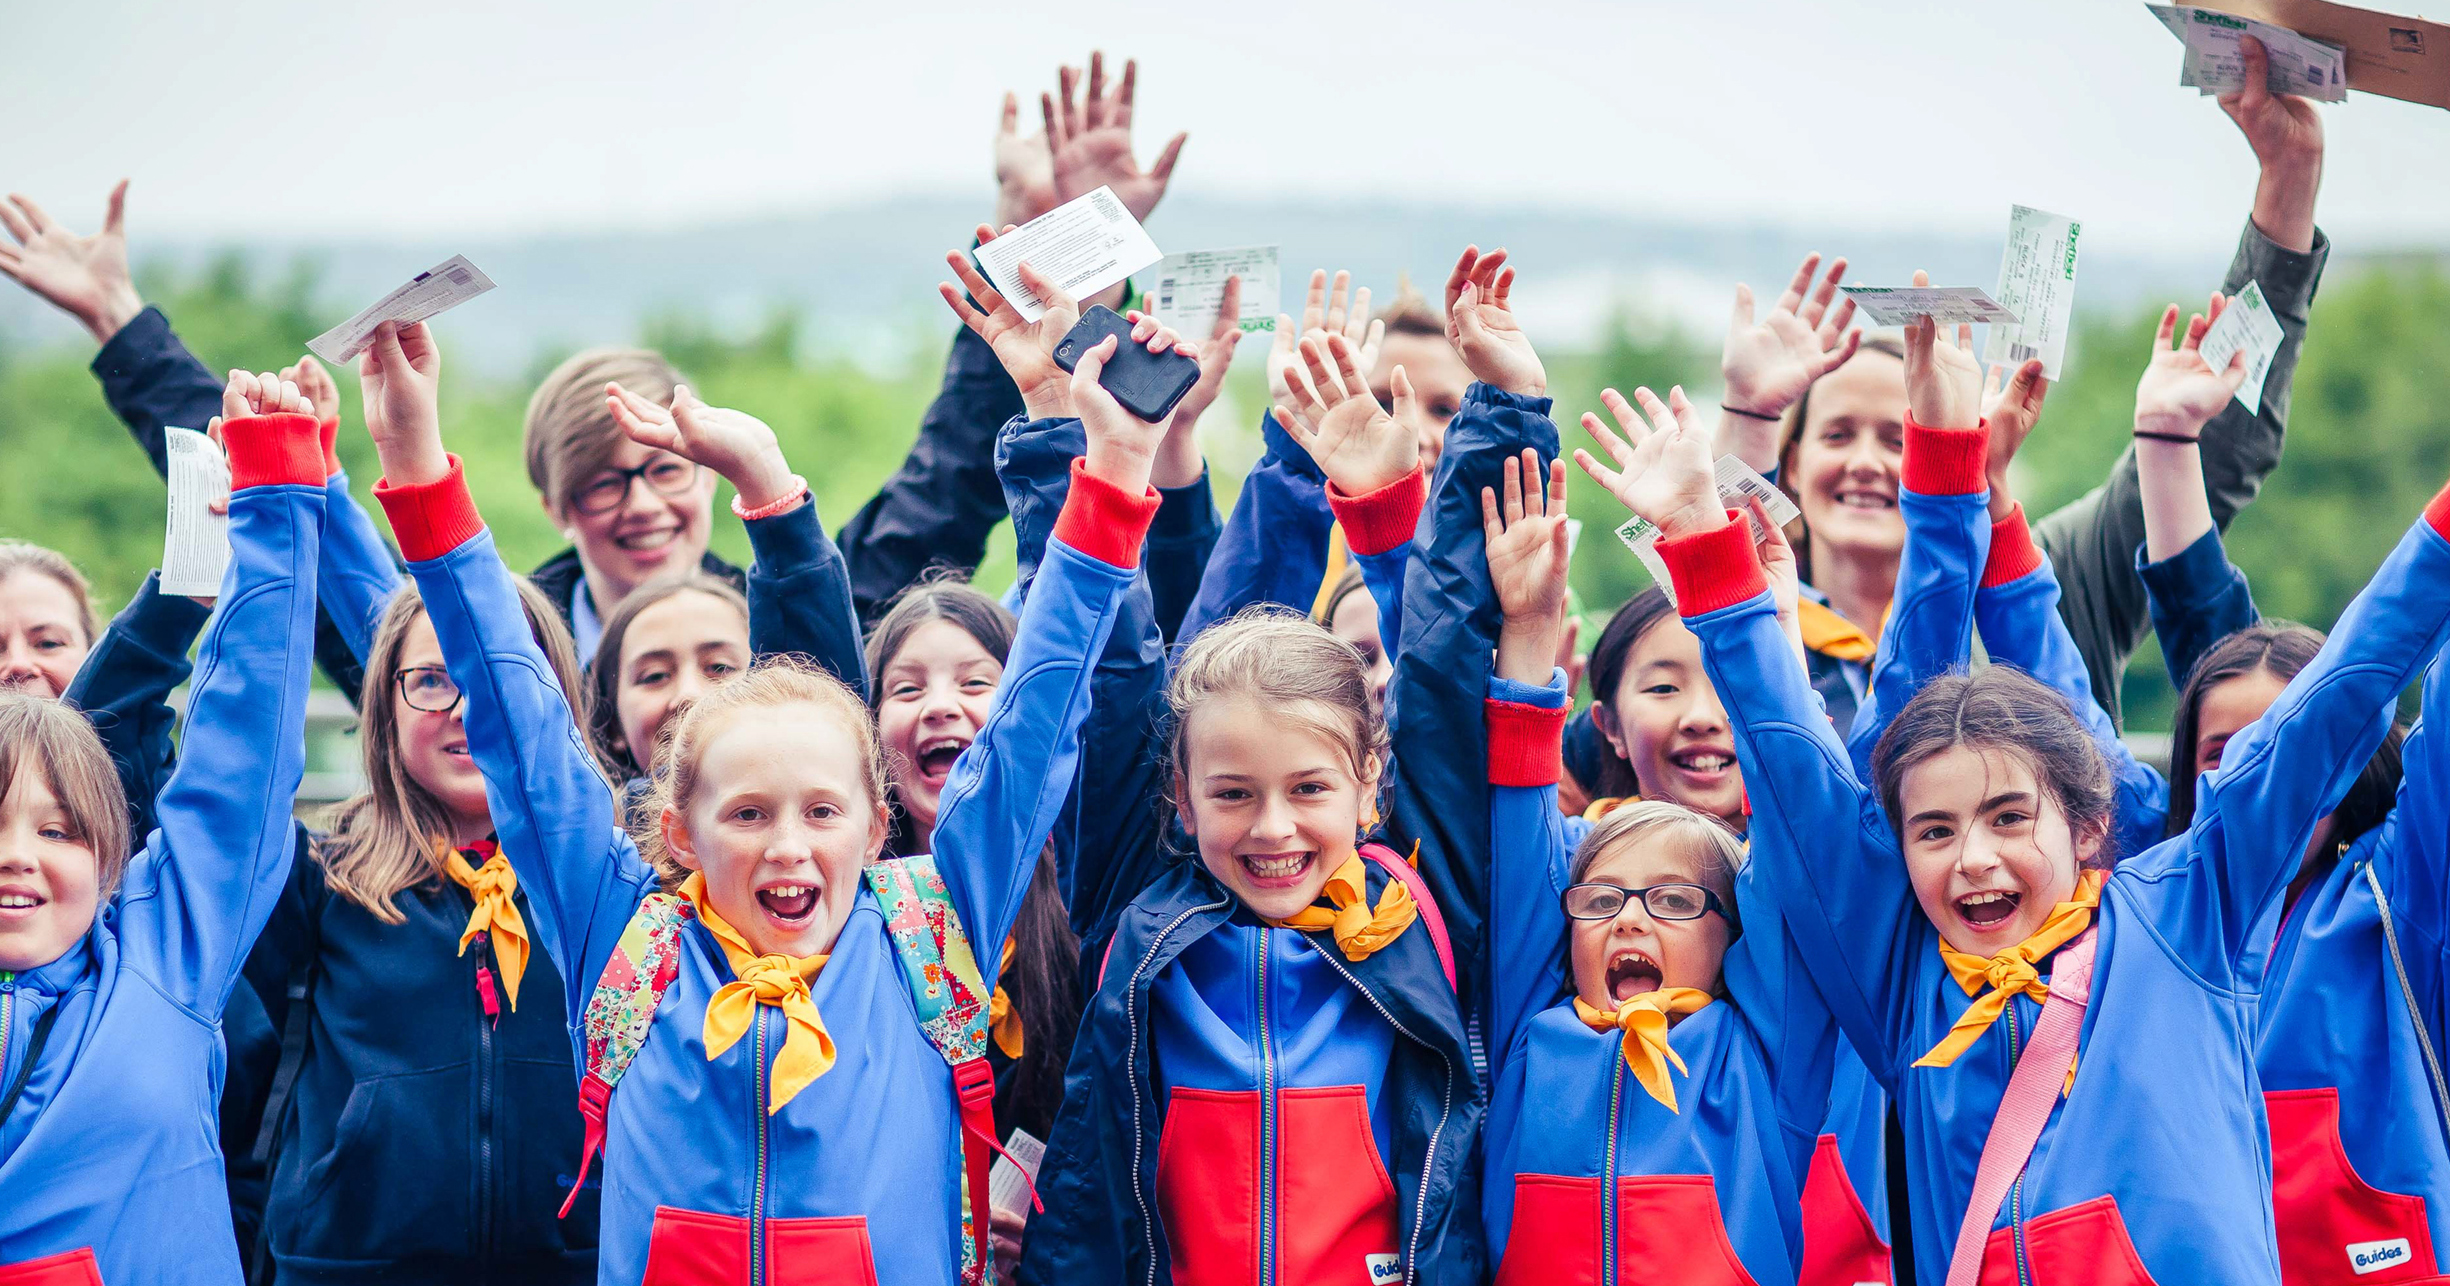 A group of young scouts cheering at a girlguiding event